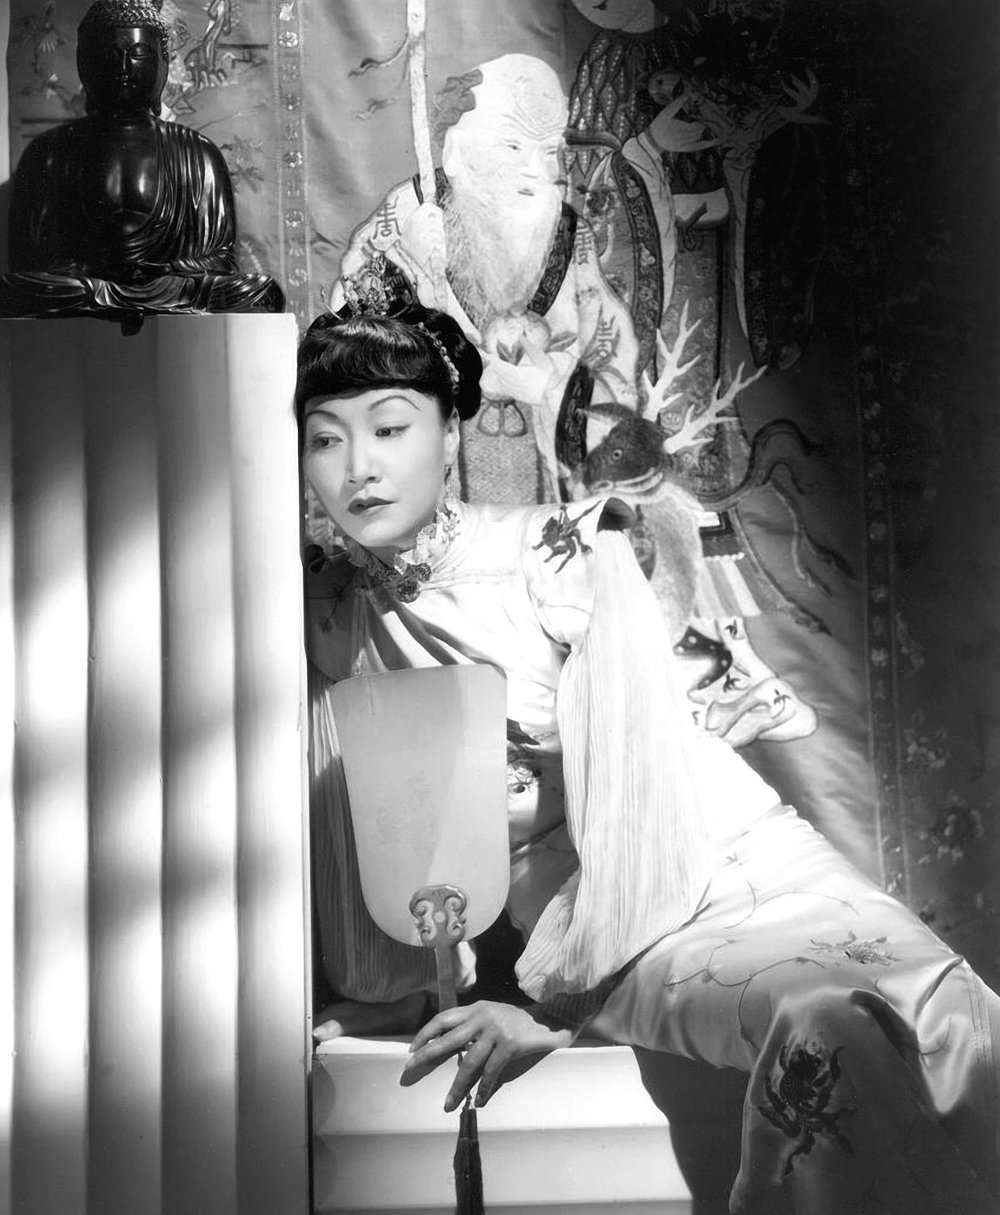 anna-may-wong-silent-movies-movies-1011557349.jpg